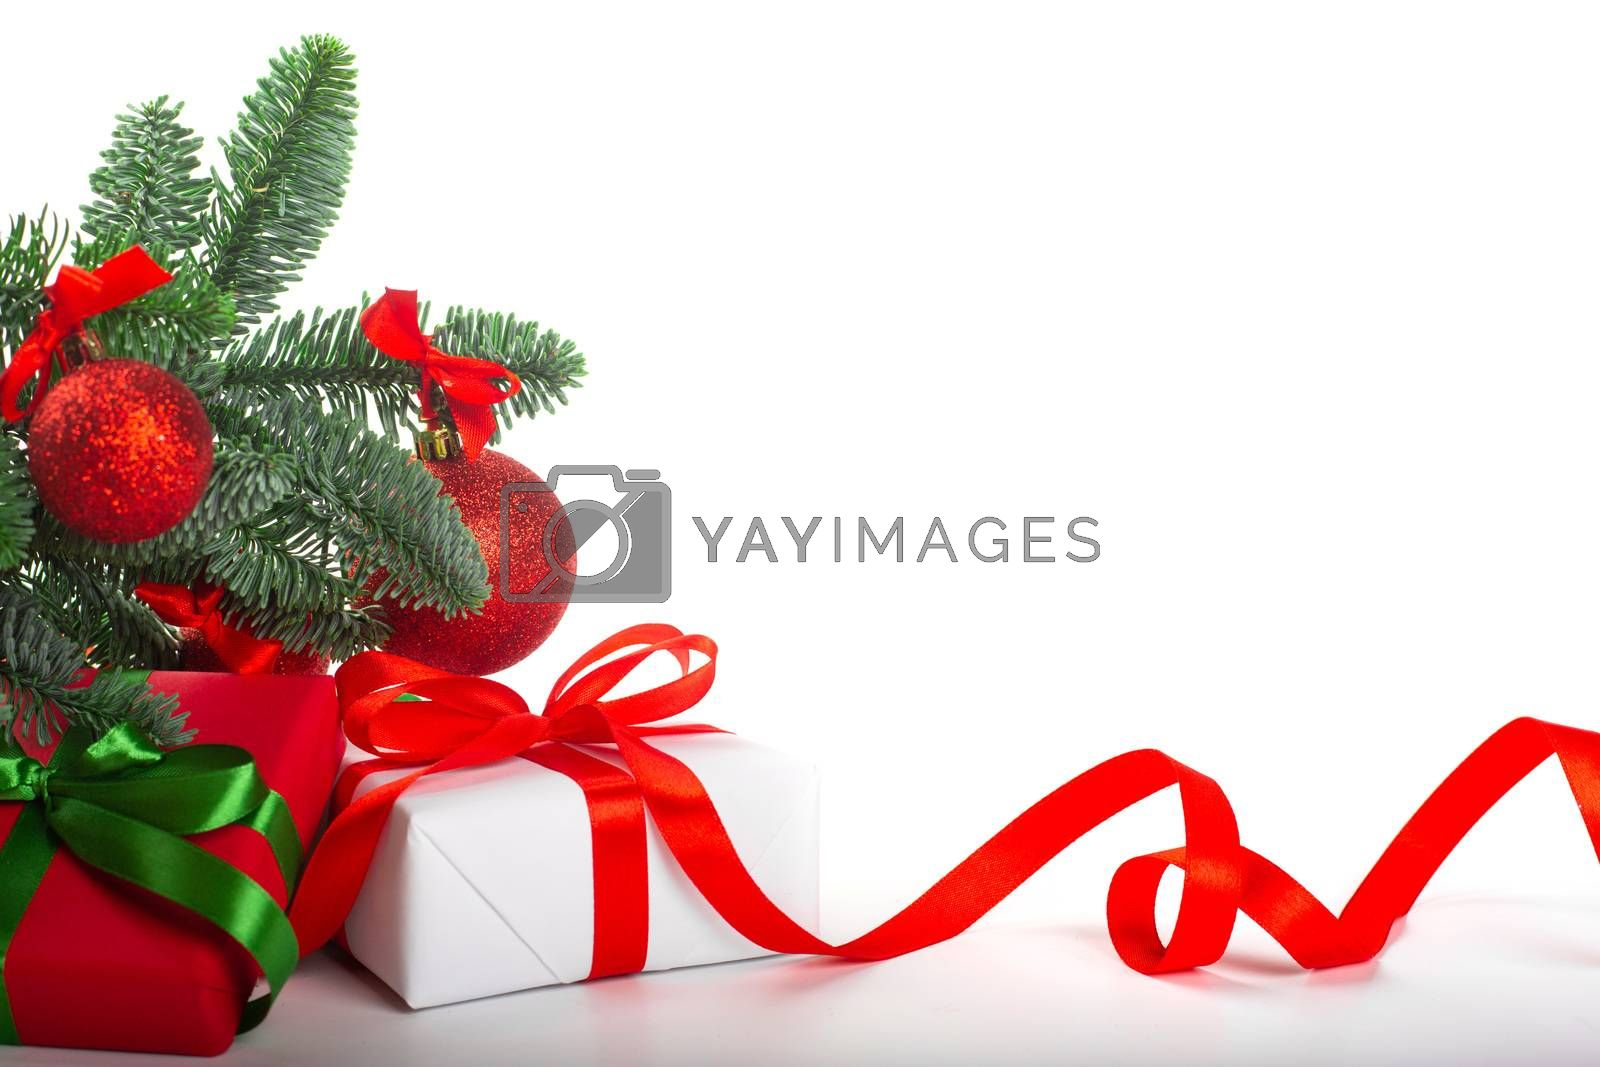 Royalty free image of Gift boxes with red bow by destillat